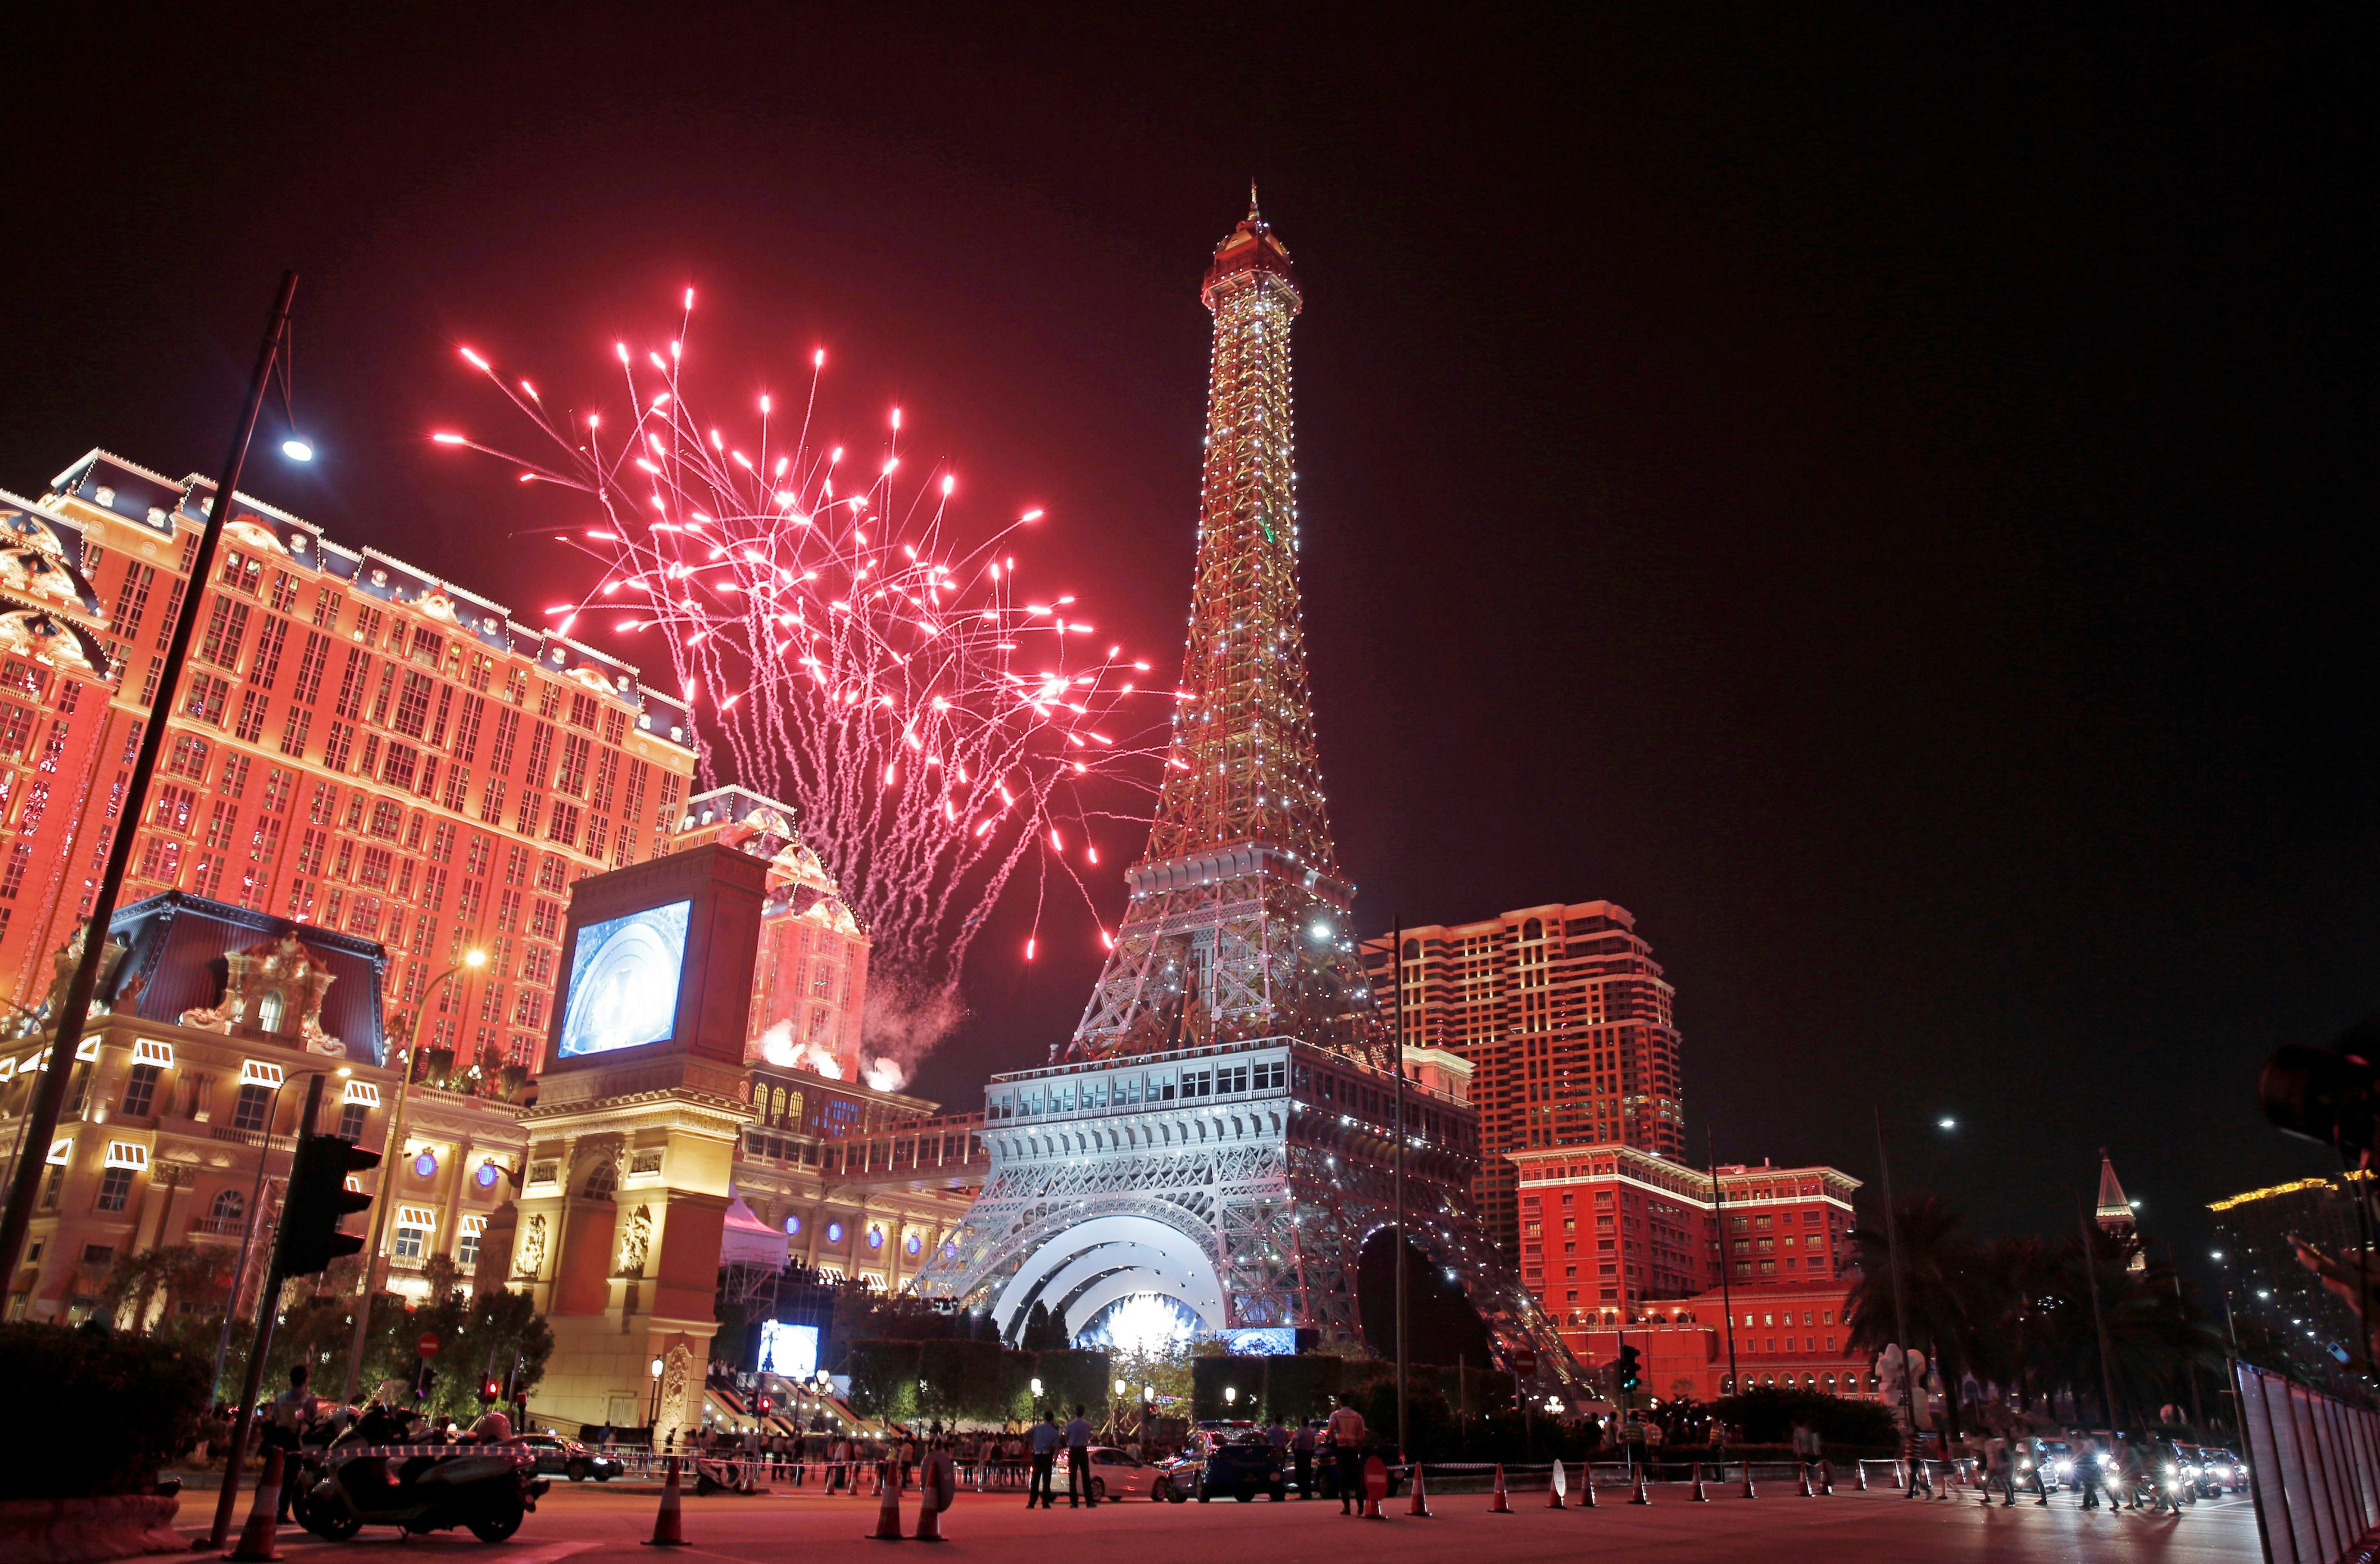 Slide 39 of 57: CAPTION: Fireworks explodes at a replica of the Eiffel Tower of Parisian Macao during an opening ceremony in Macau, China, Tuesday, Sept. 13, 2016. The southern Chinese casino gambling powerhouse of Macau is getting a French twist. U.S. billionaire Sheldon Adelson is set to throw open the doors Tuesday to the French-themed Parisian Macao, the mogul's fifth property in the former Portuguese colony. (AP Photo/Kin Cheung)